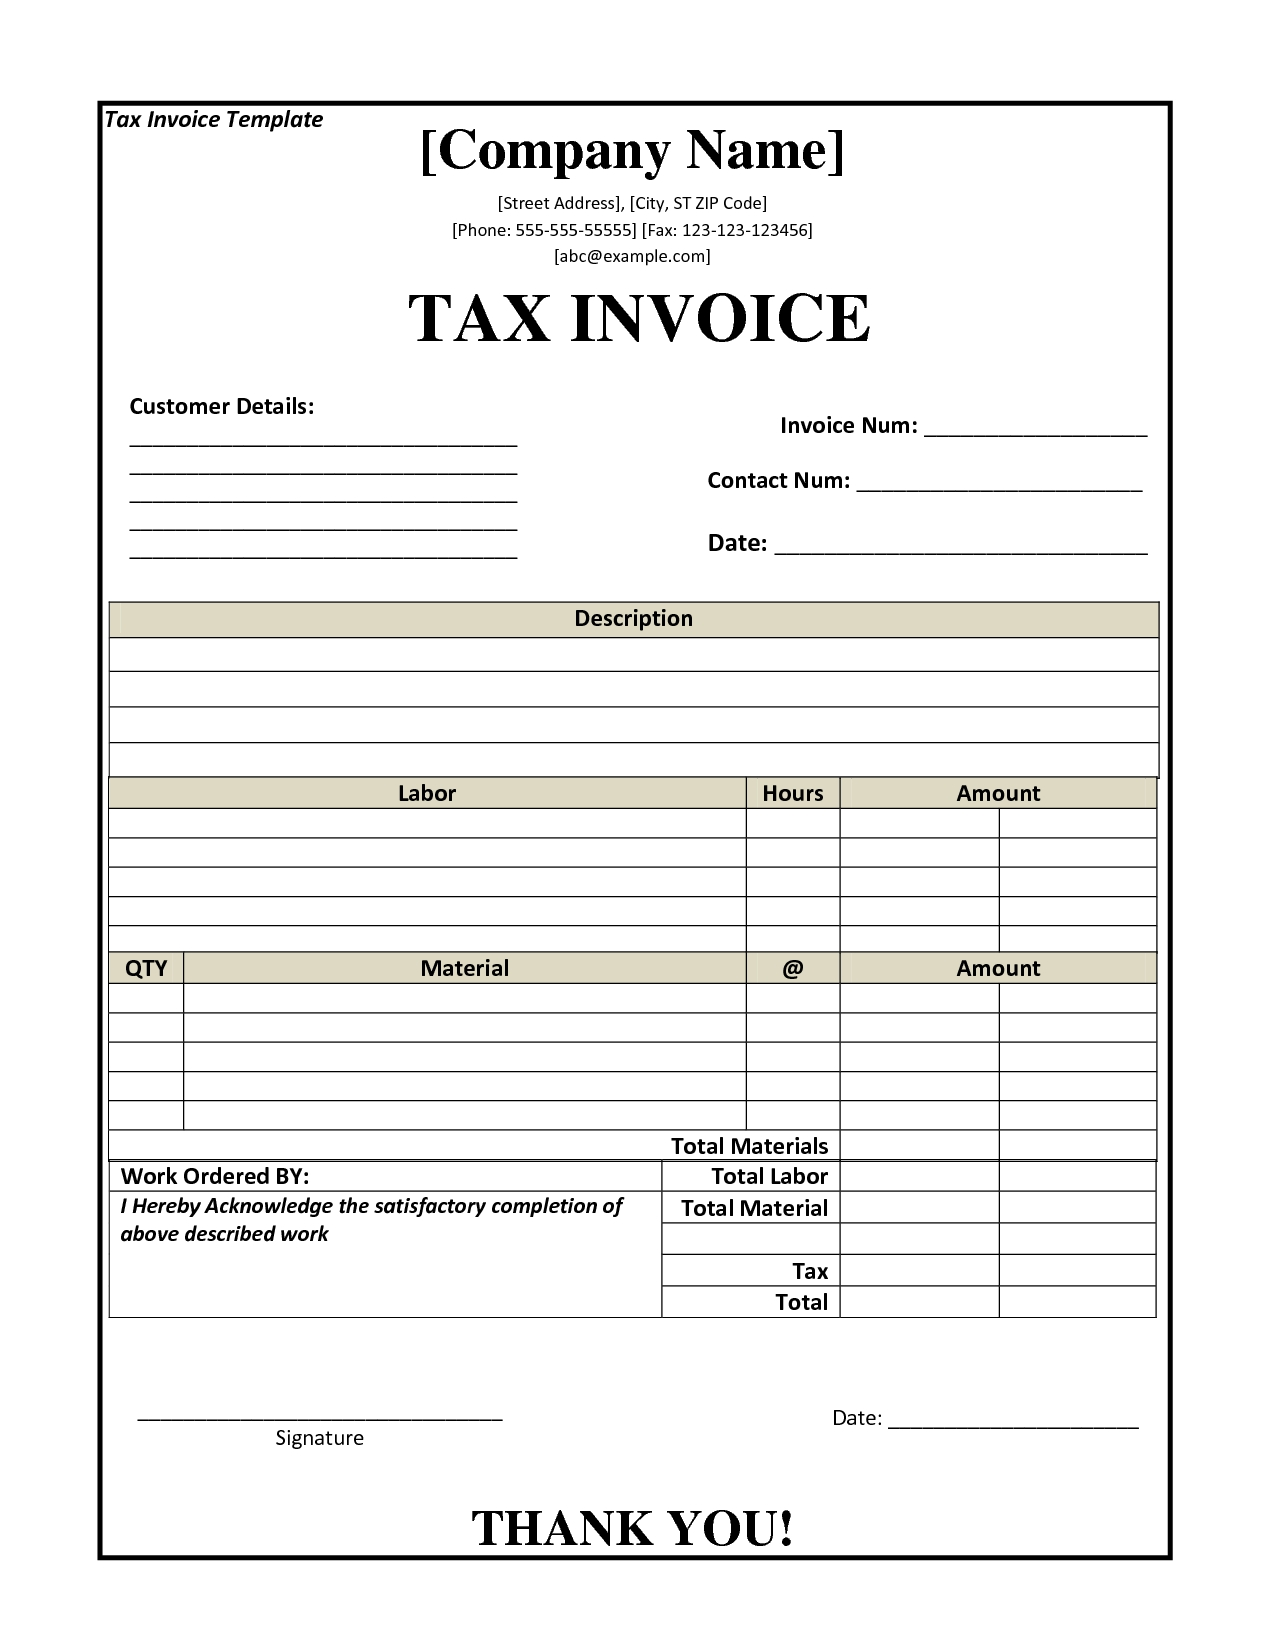 tax invoice templates free australian tax invoice template best business template 1275 X 1650